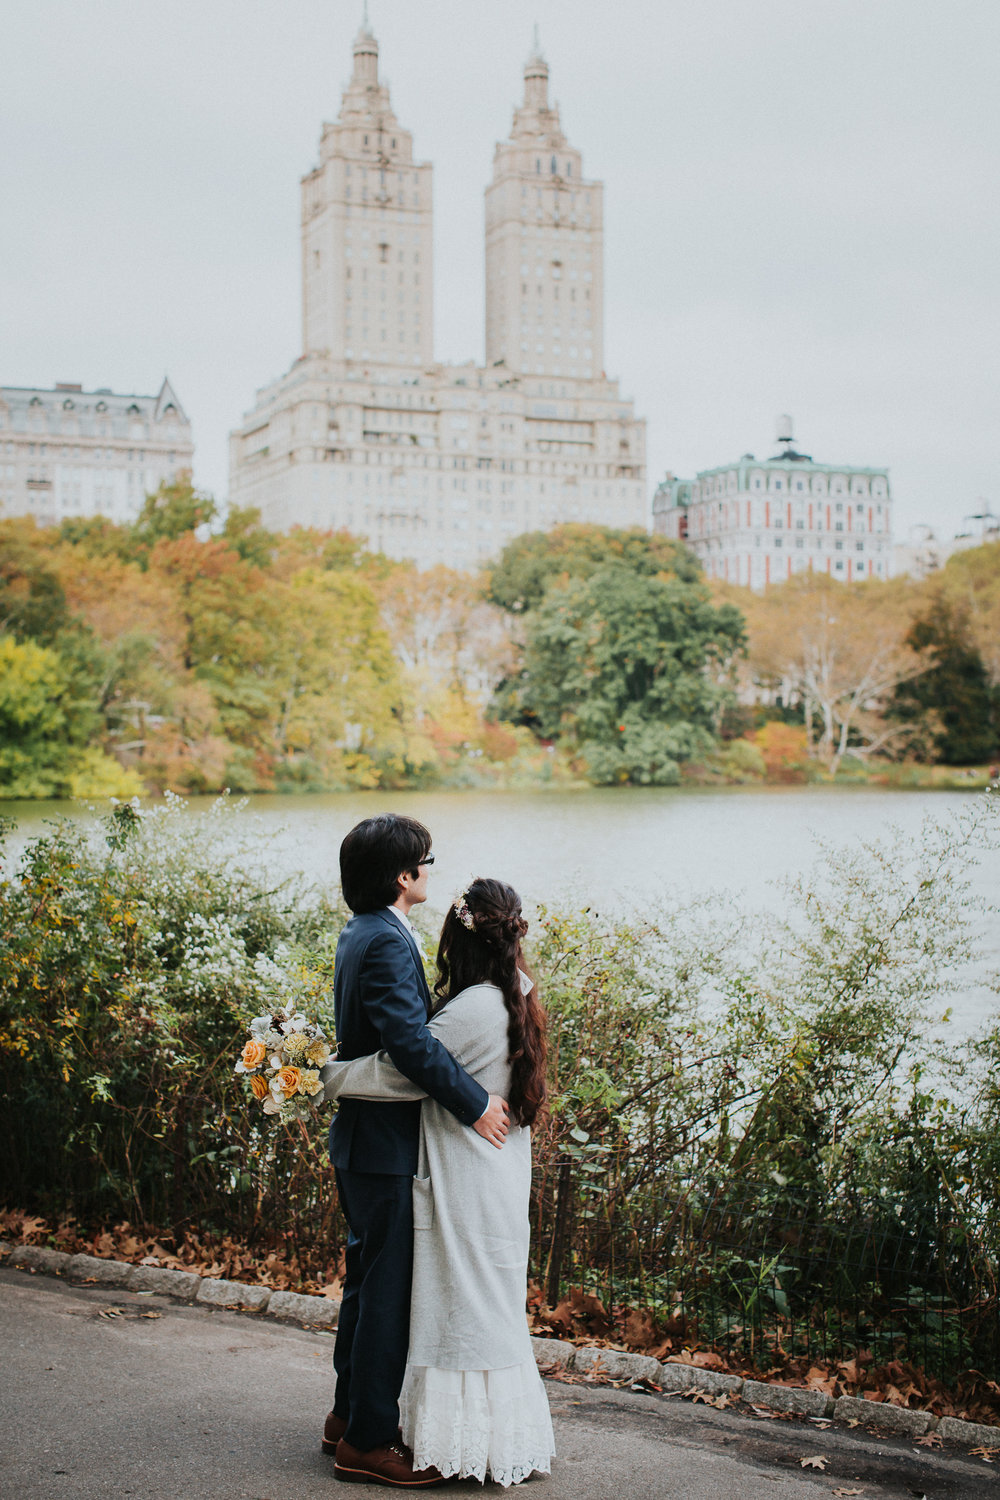 Central-Park-Brooklyn-Bridge-Dumbo-NYC-Documentary-Wedding-Photographer-35.jpg